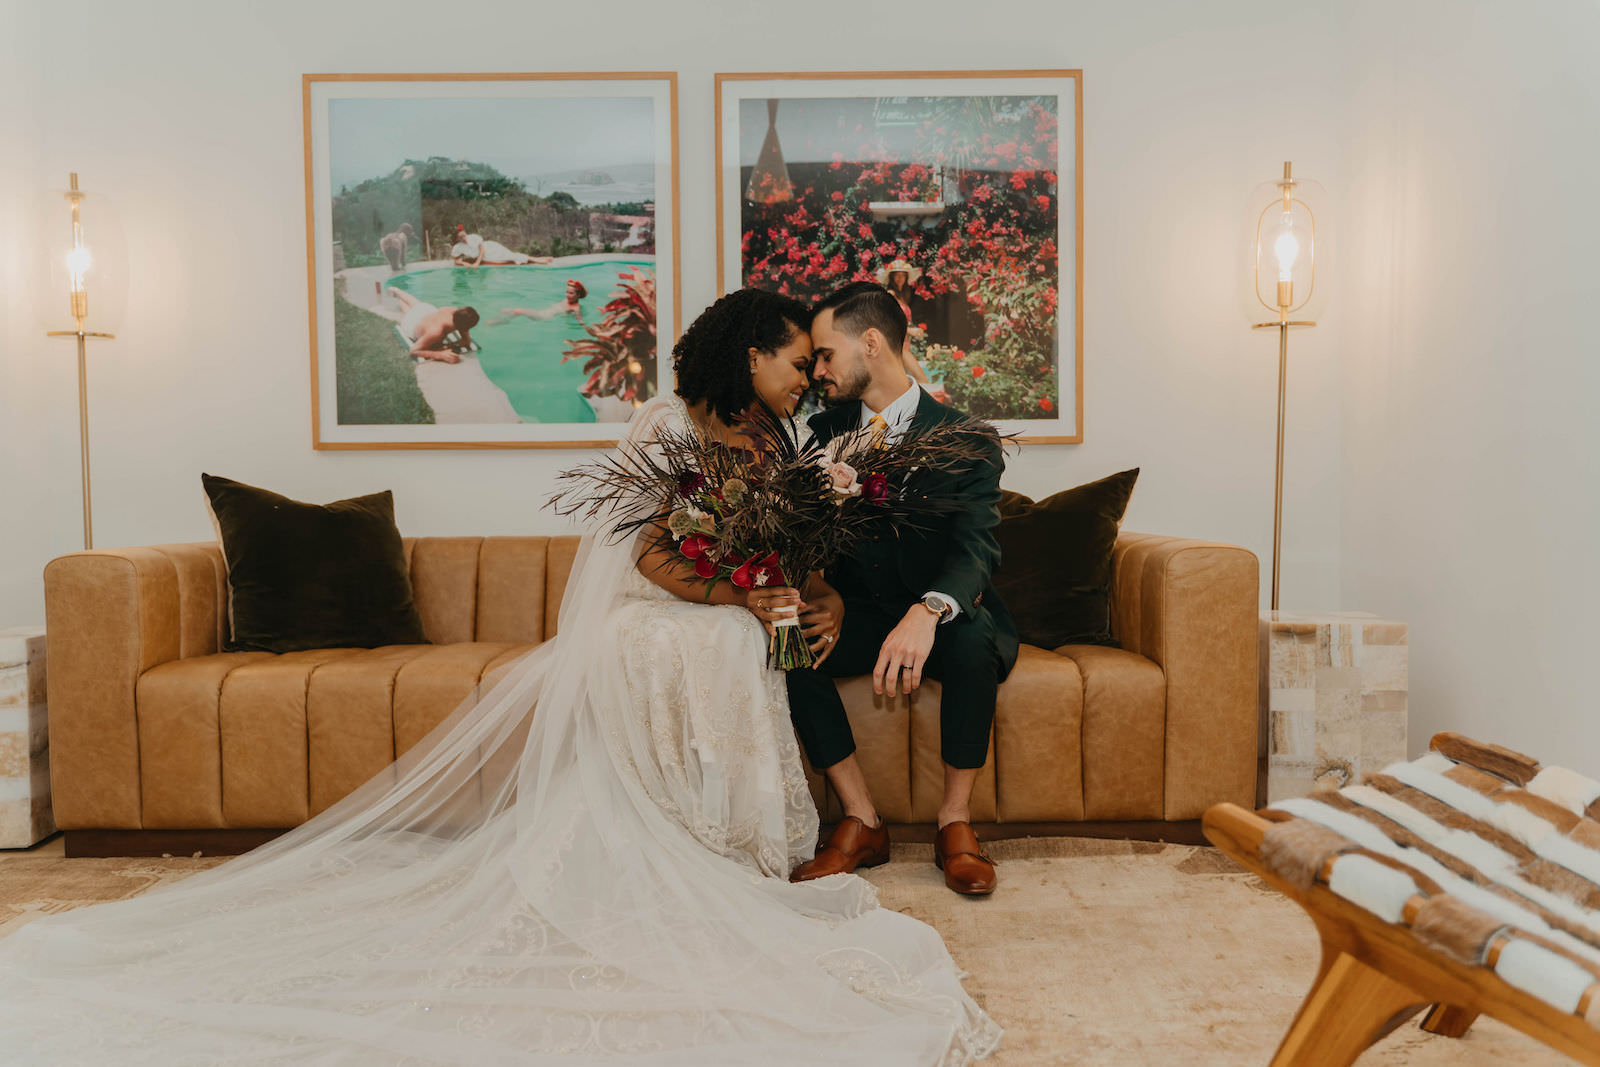 Indoor Bride and Groom Portrait in Tampa Wedding Venue Hyde House   Illusion Lace Embroidered Beaded V Neck Wedding Dress Bridal Gown with Sheer Tulle Cape Sleeves by Designer Amalia Carrara Bridal   Groom in Classic Black Tux Suit with Gold Tie   Loose Wild Boho Bridal Bouquet with Deep Red Burgundy and Blush Roses